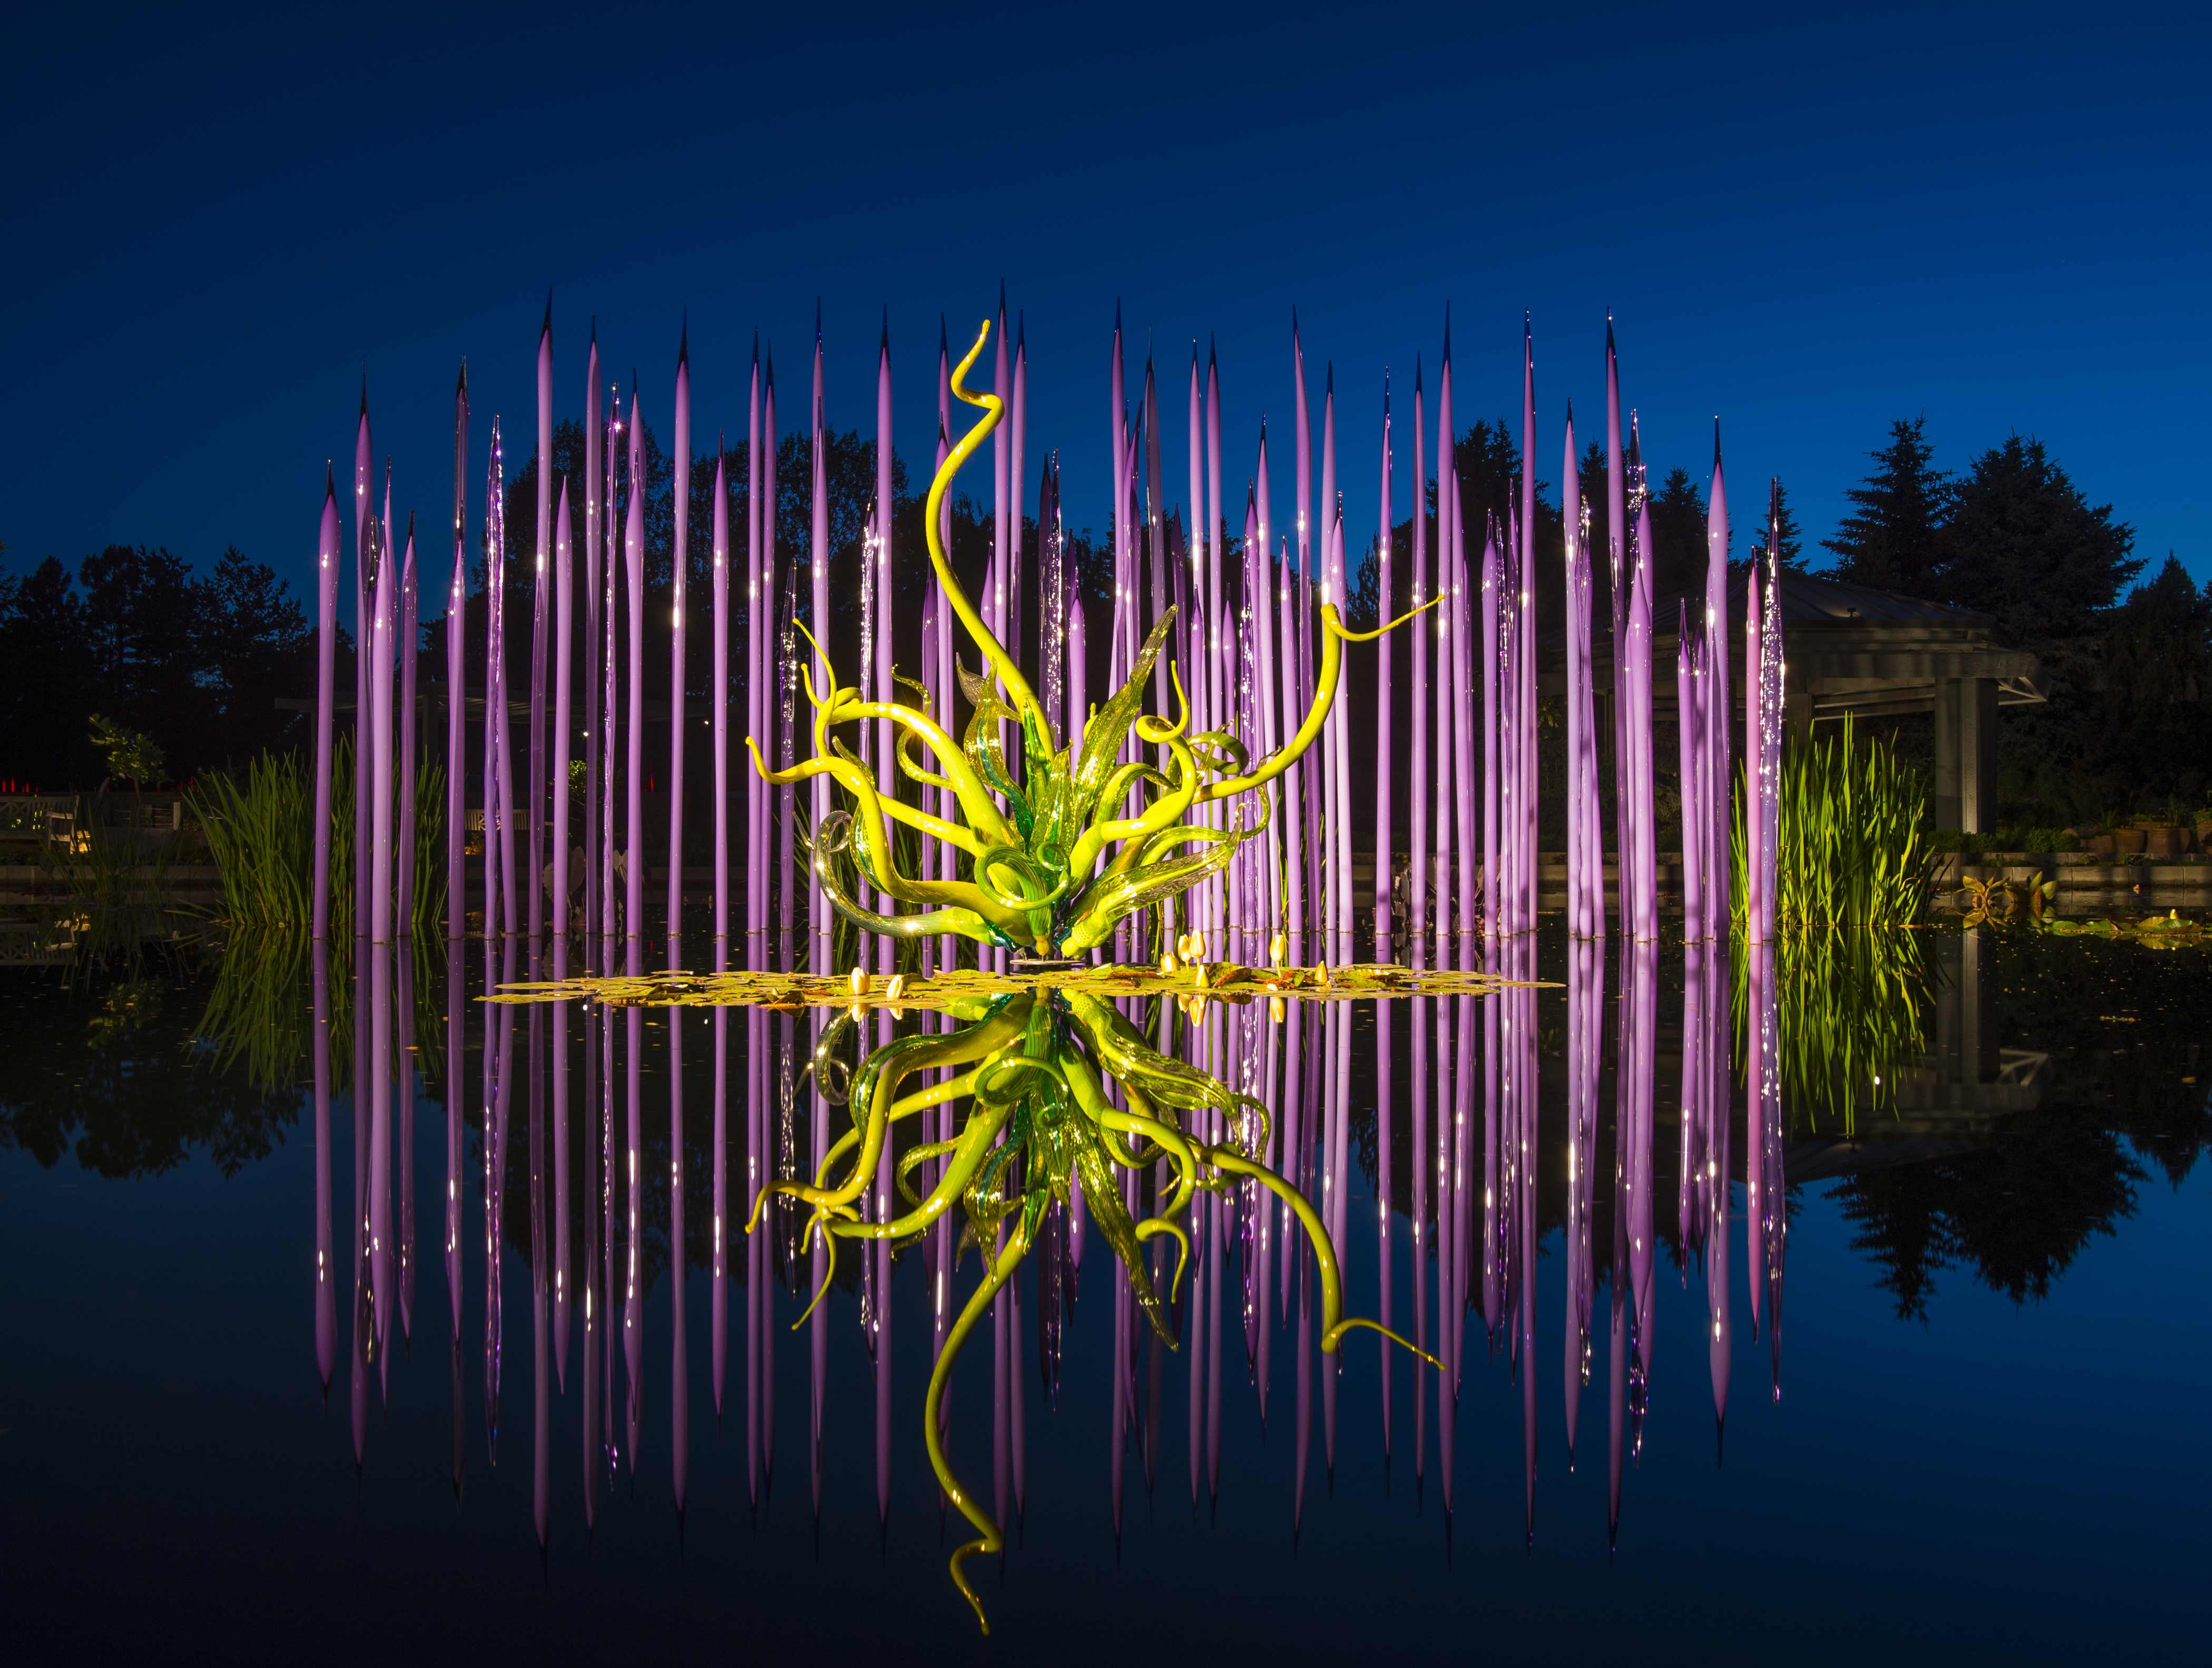 Chihuly exhibit photo